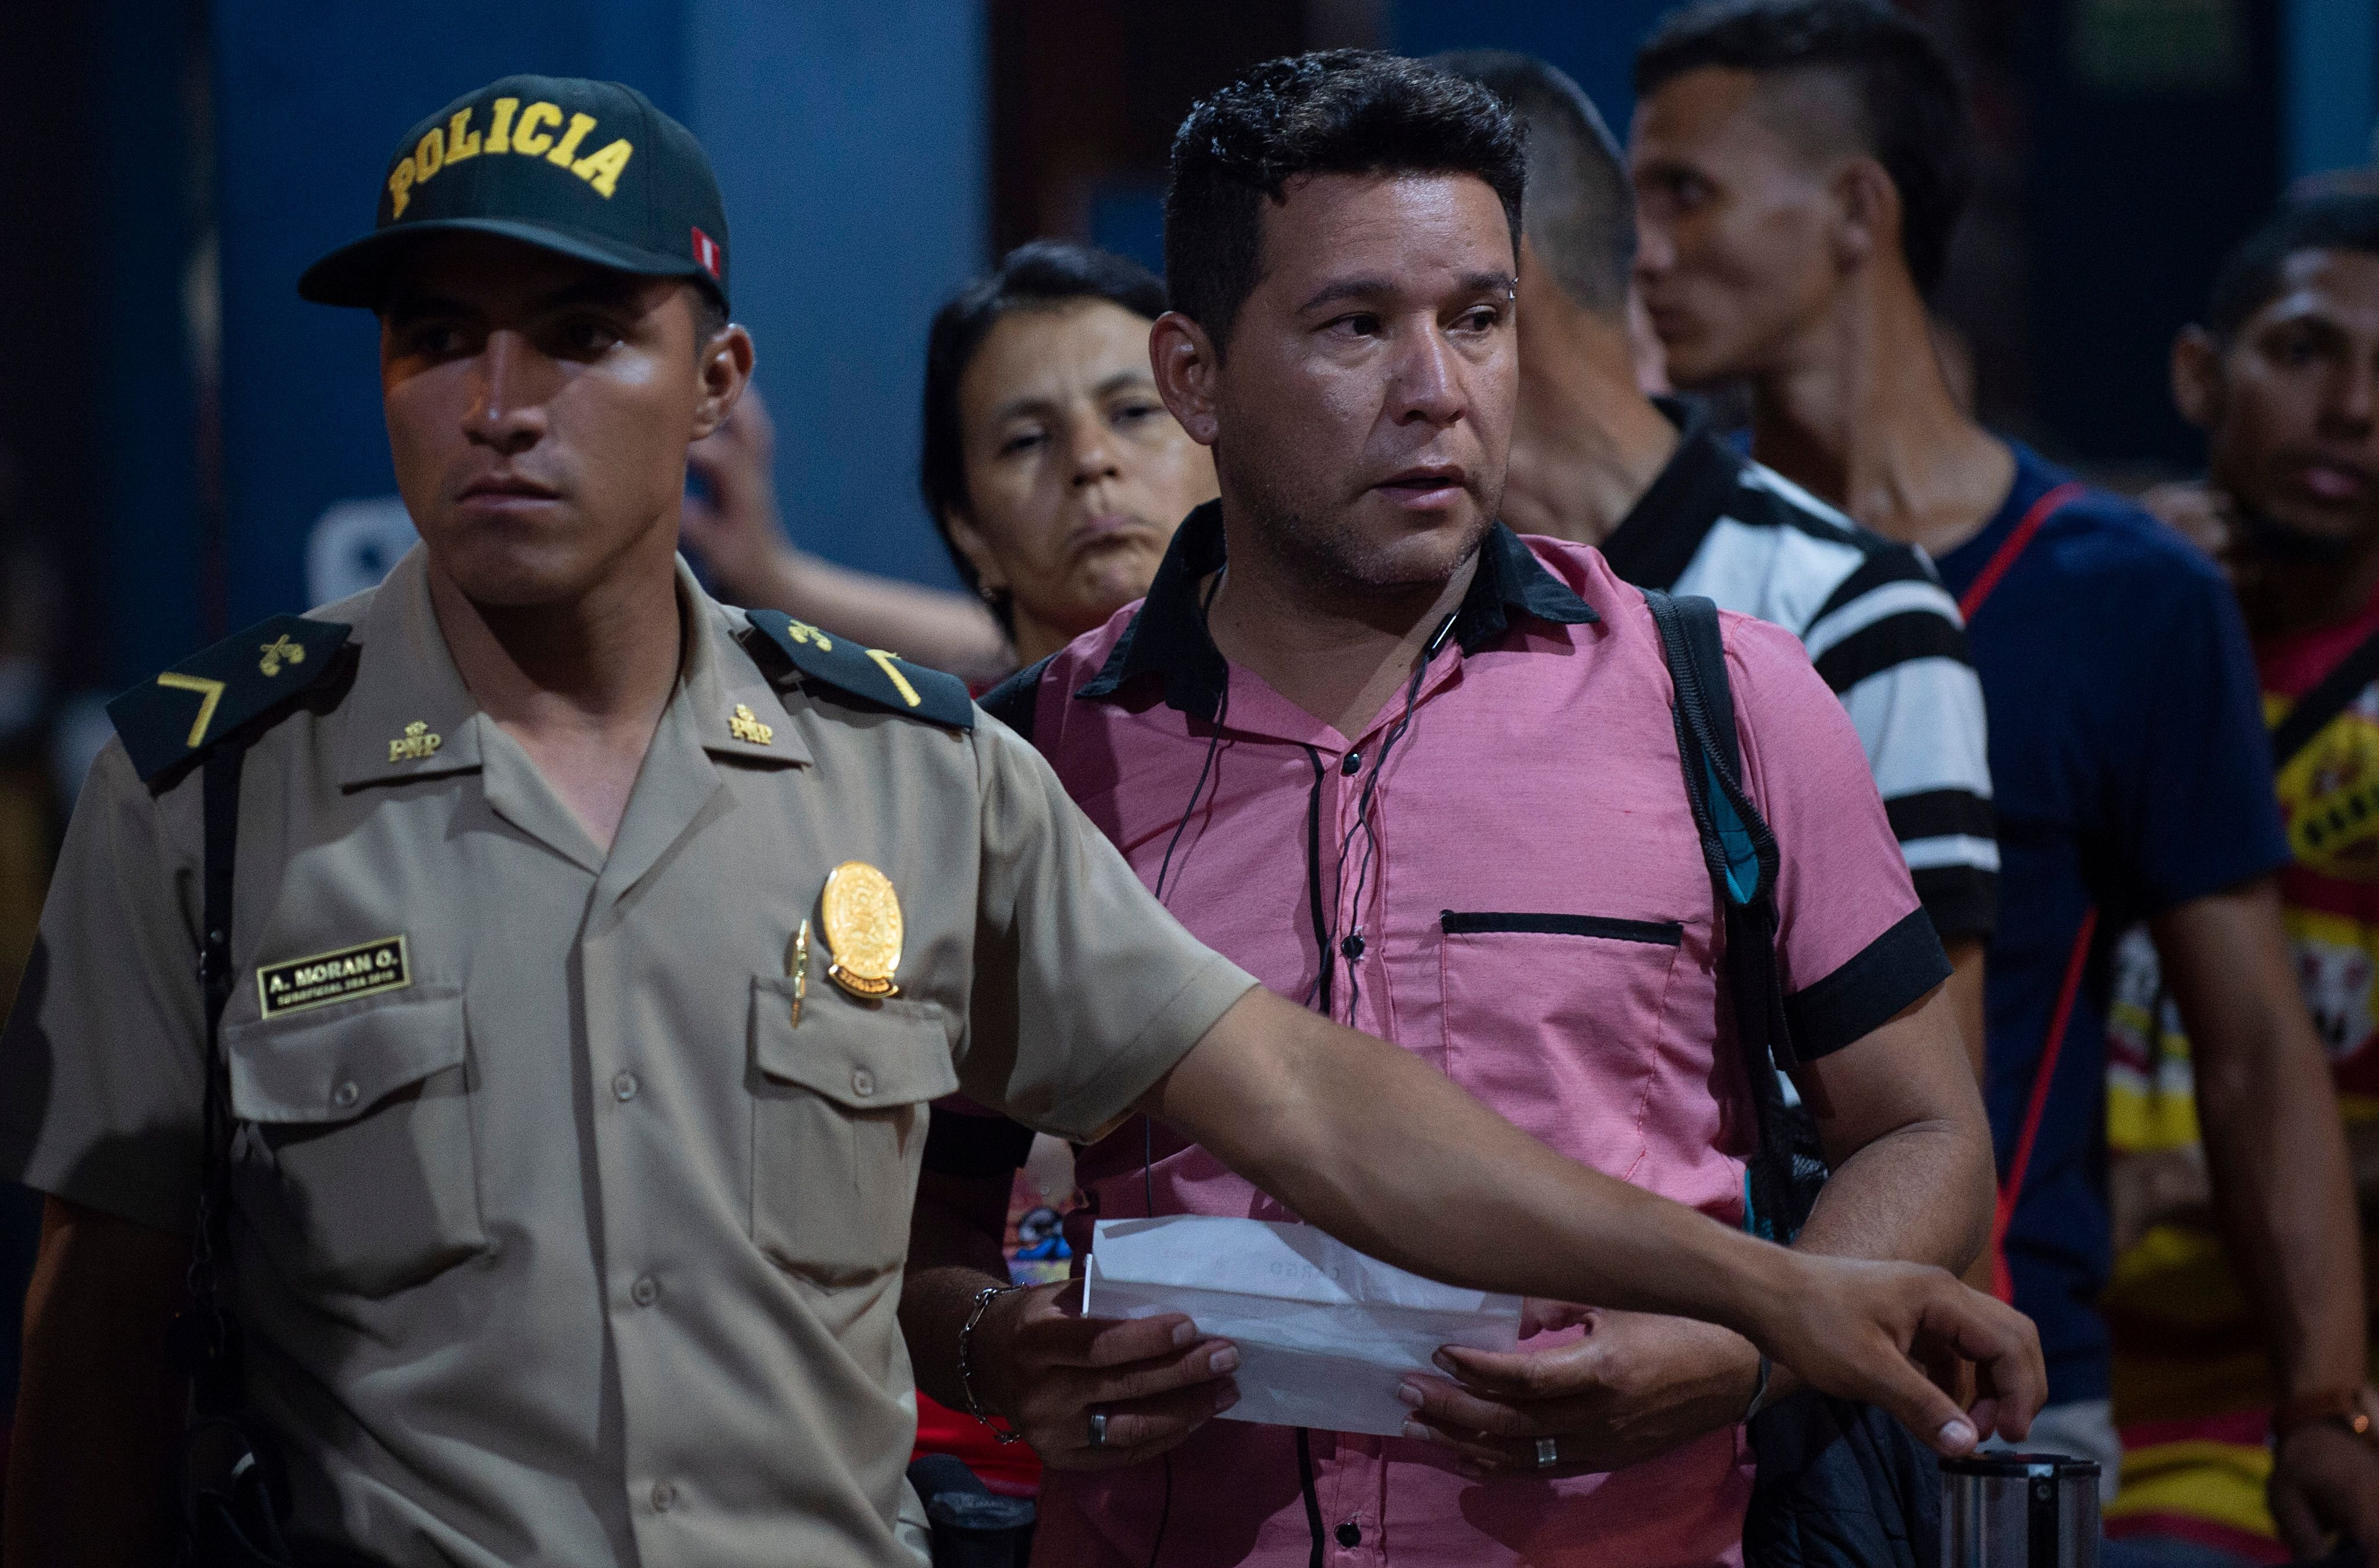 A Peruvian policeman assists Venezuelan citizens waiting in line to get a refugee application at a Peruvian border post at the binational border attention centre (CEBAF) in Tumbes on June 14, 2019.